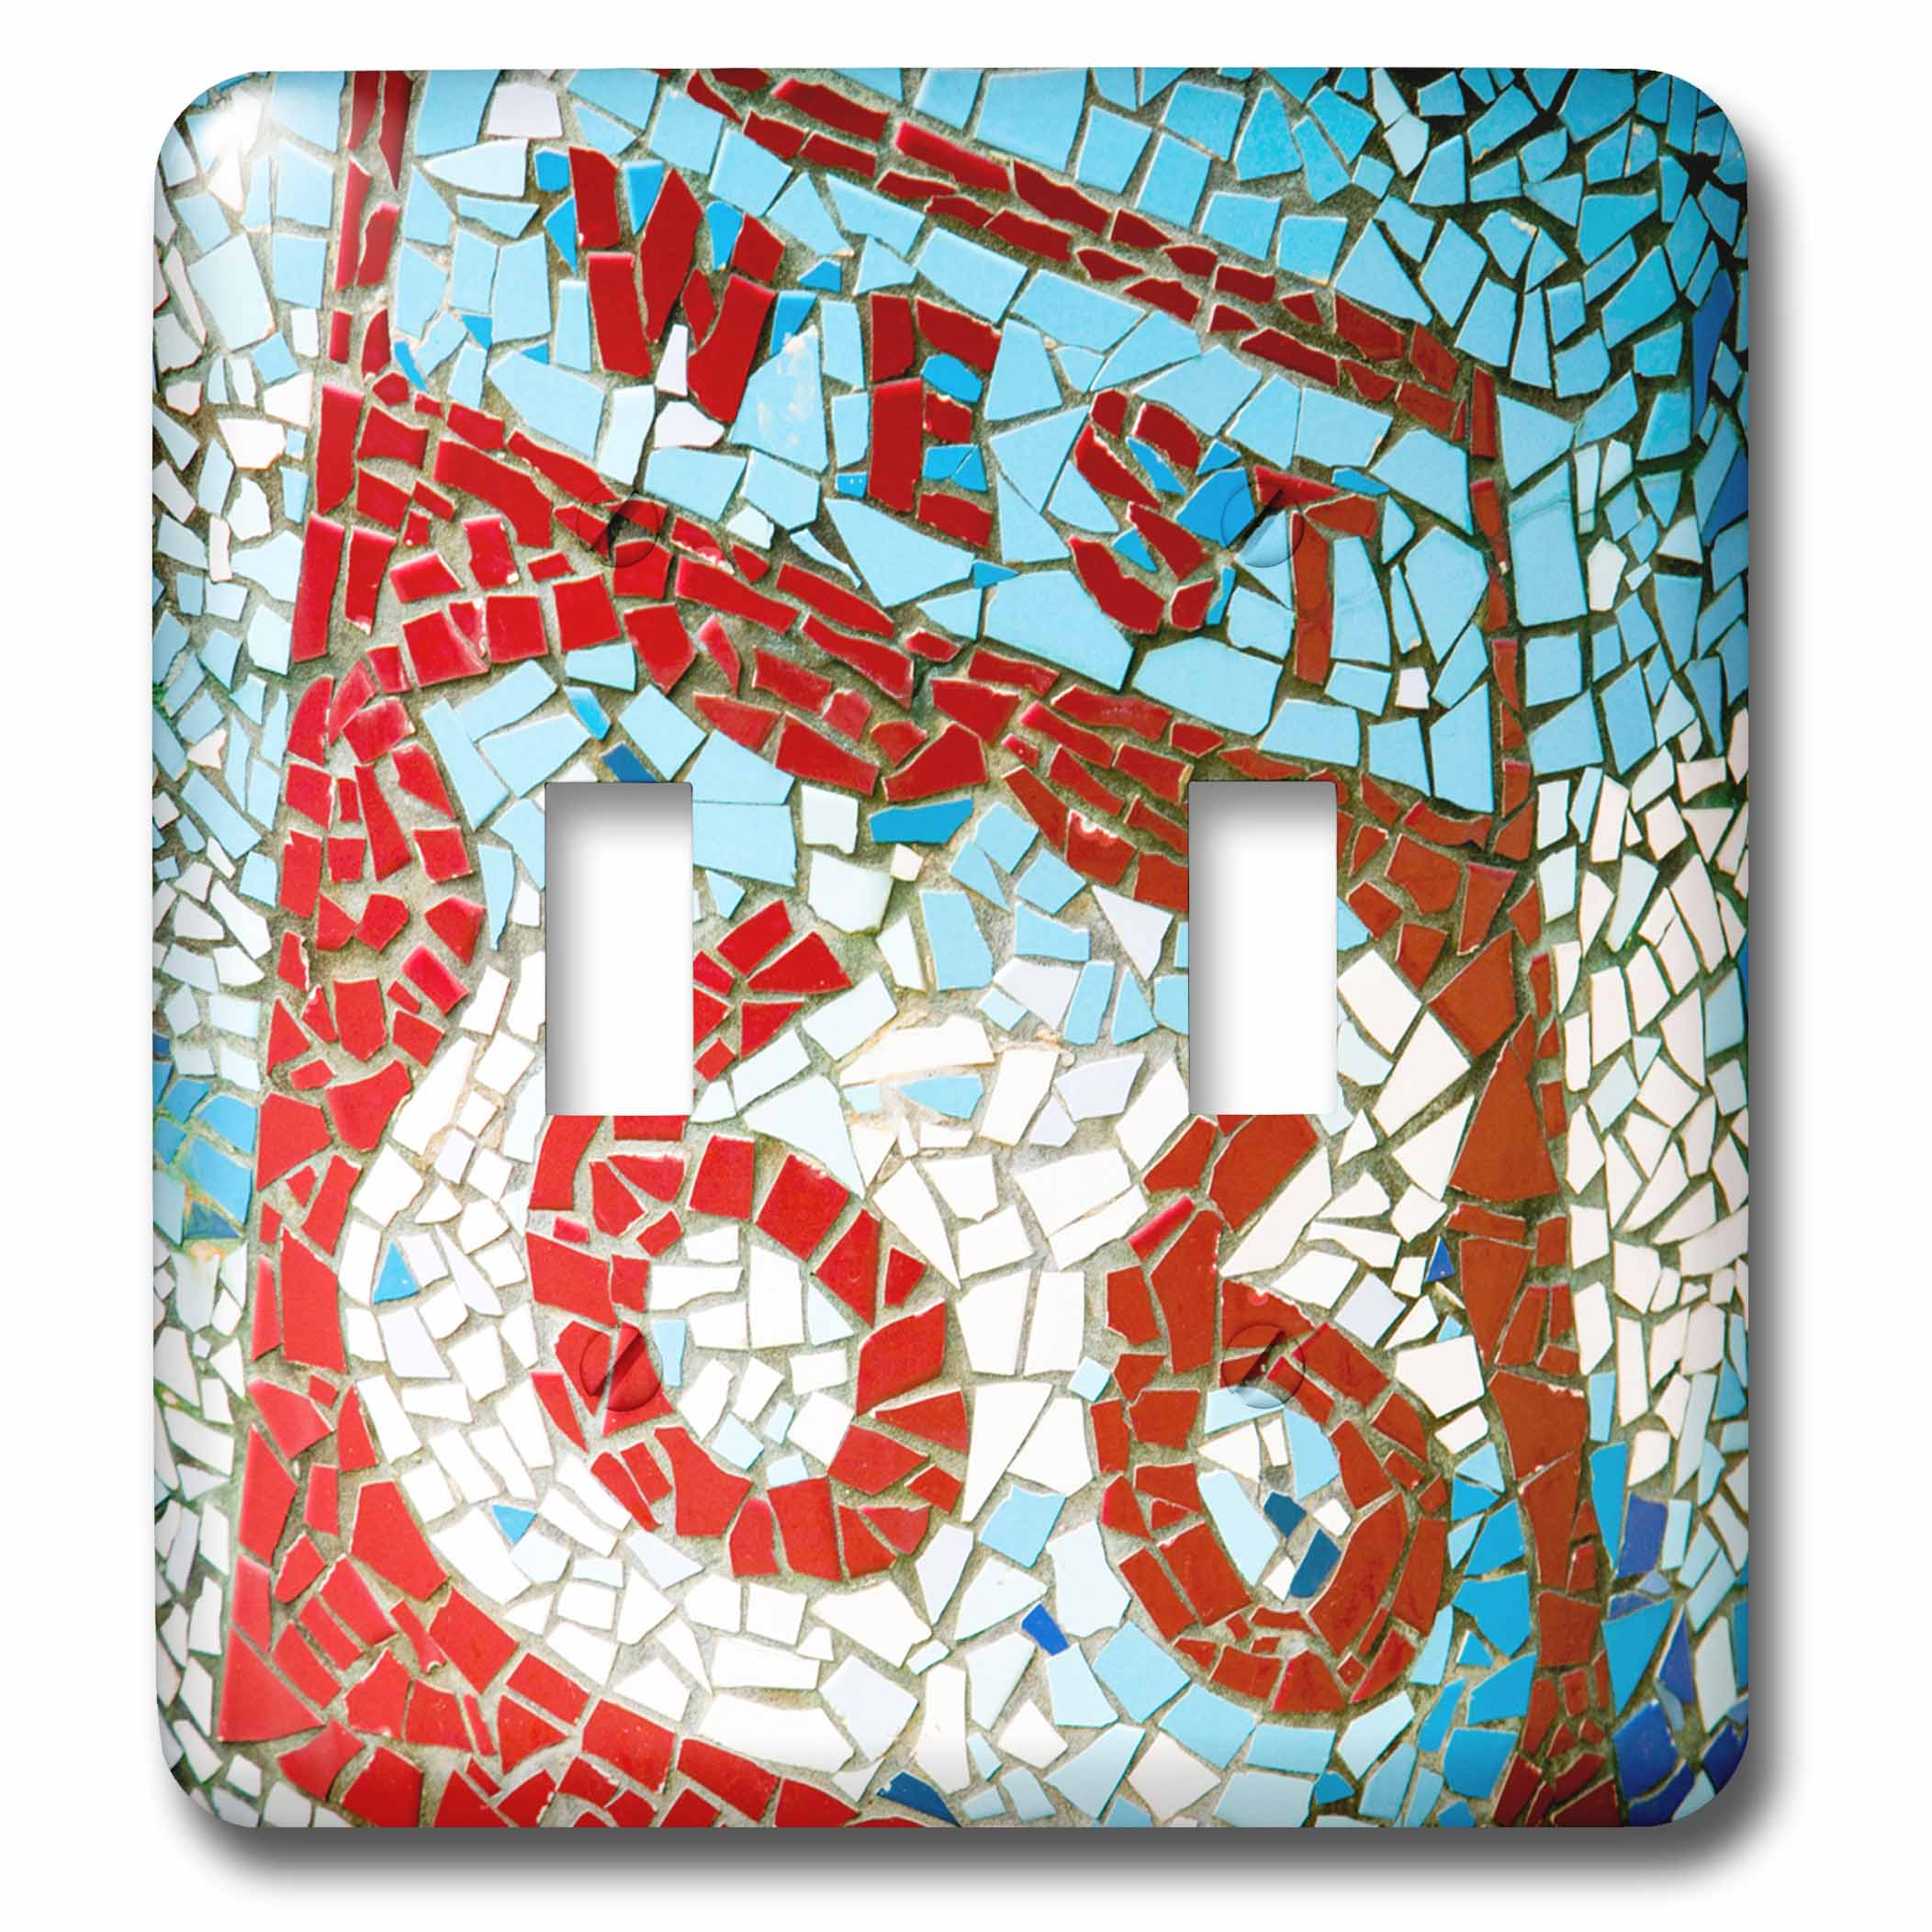 3dRose Joliet, Illinois, USA. Mosaic West Route 66 sign. Double Toggle Switch by 3dRose